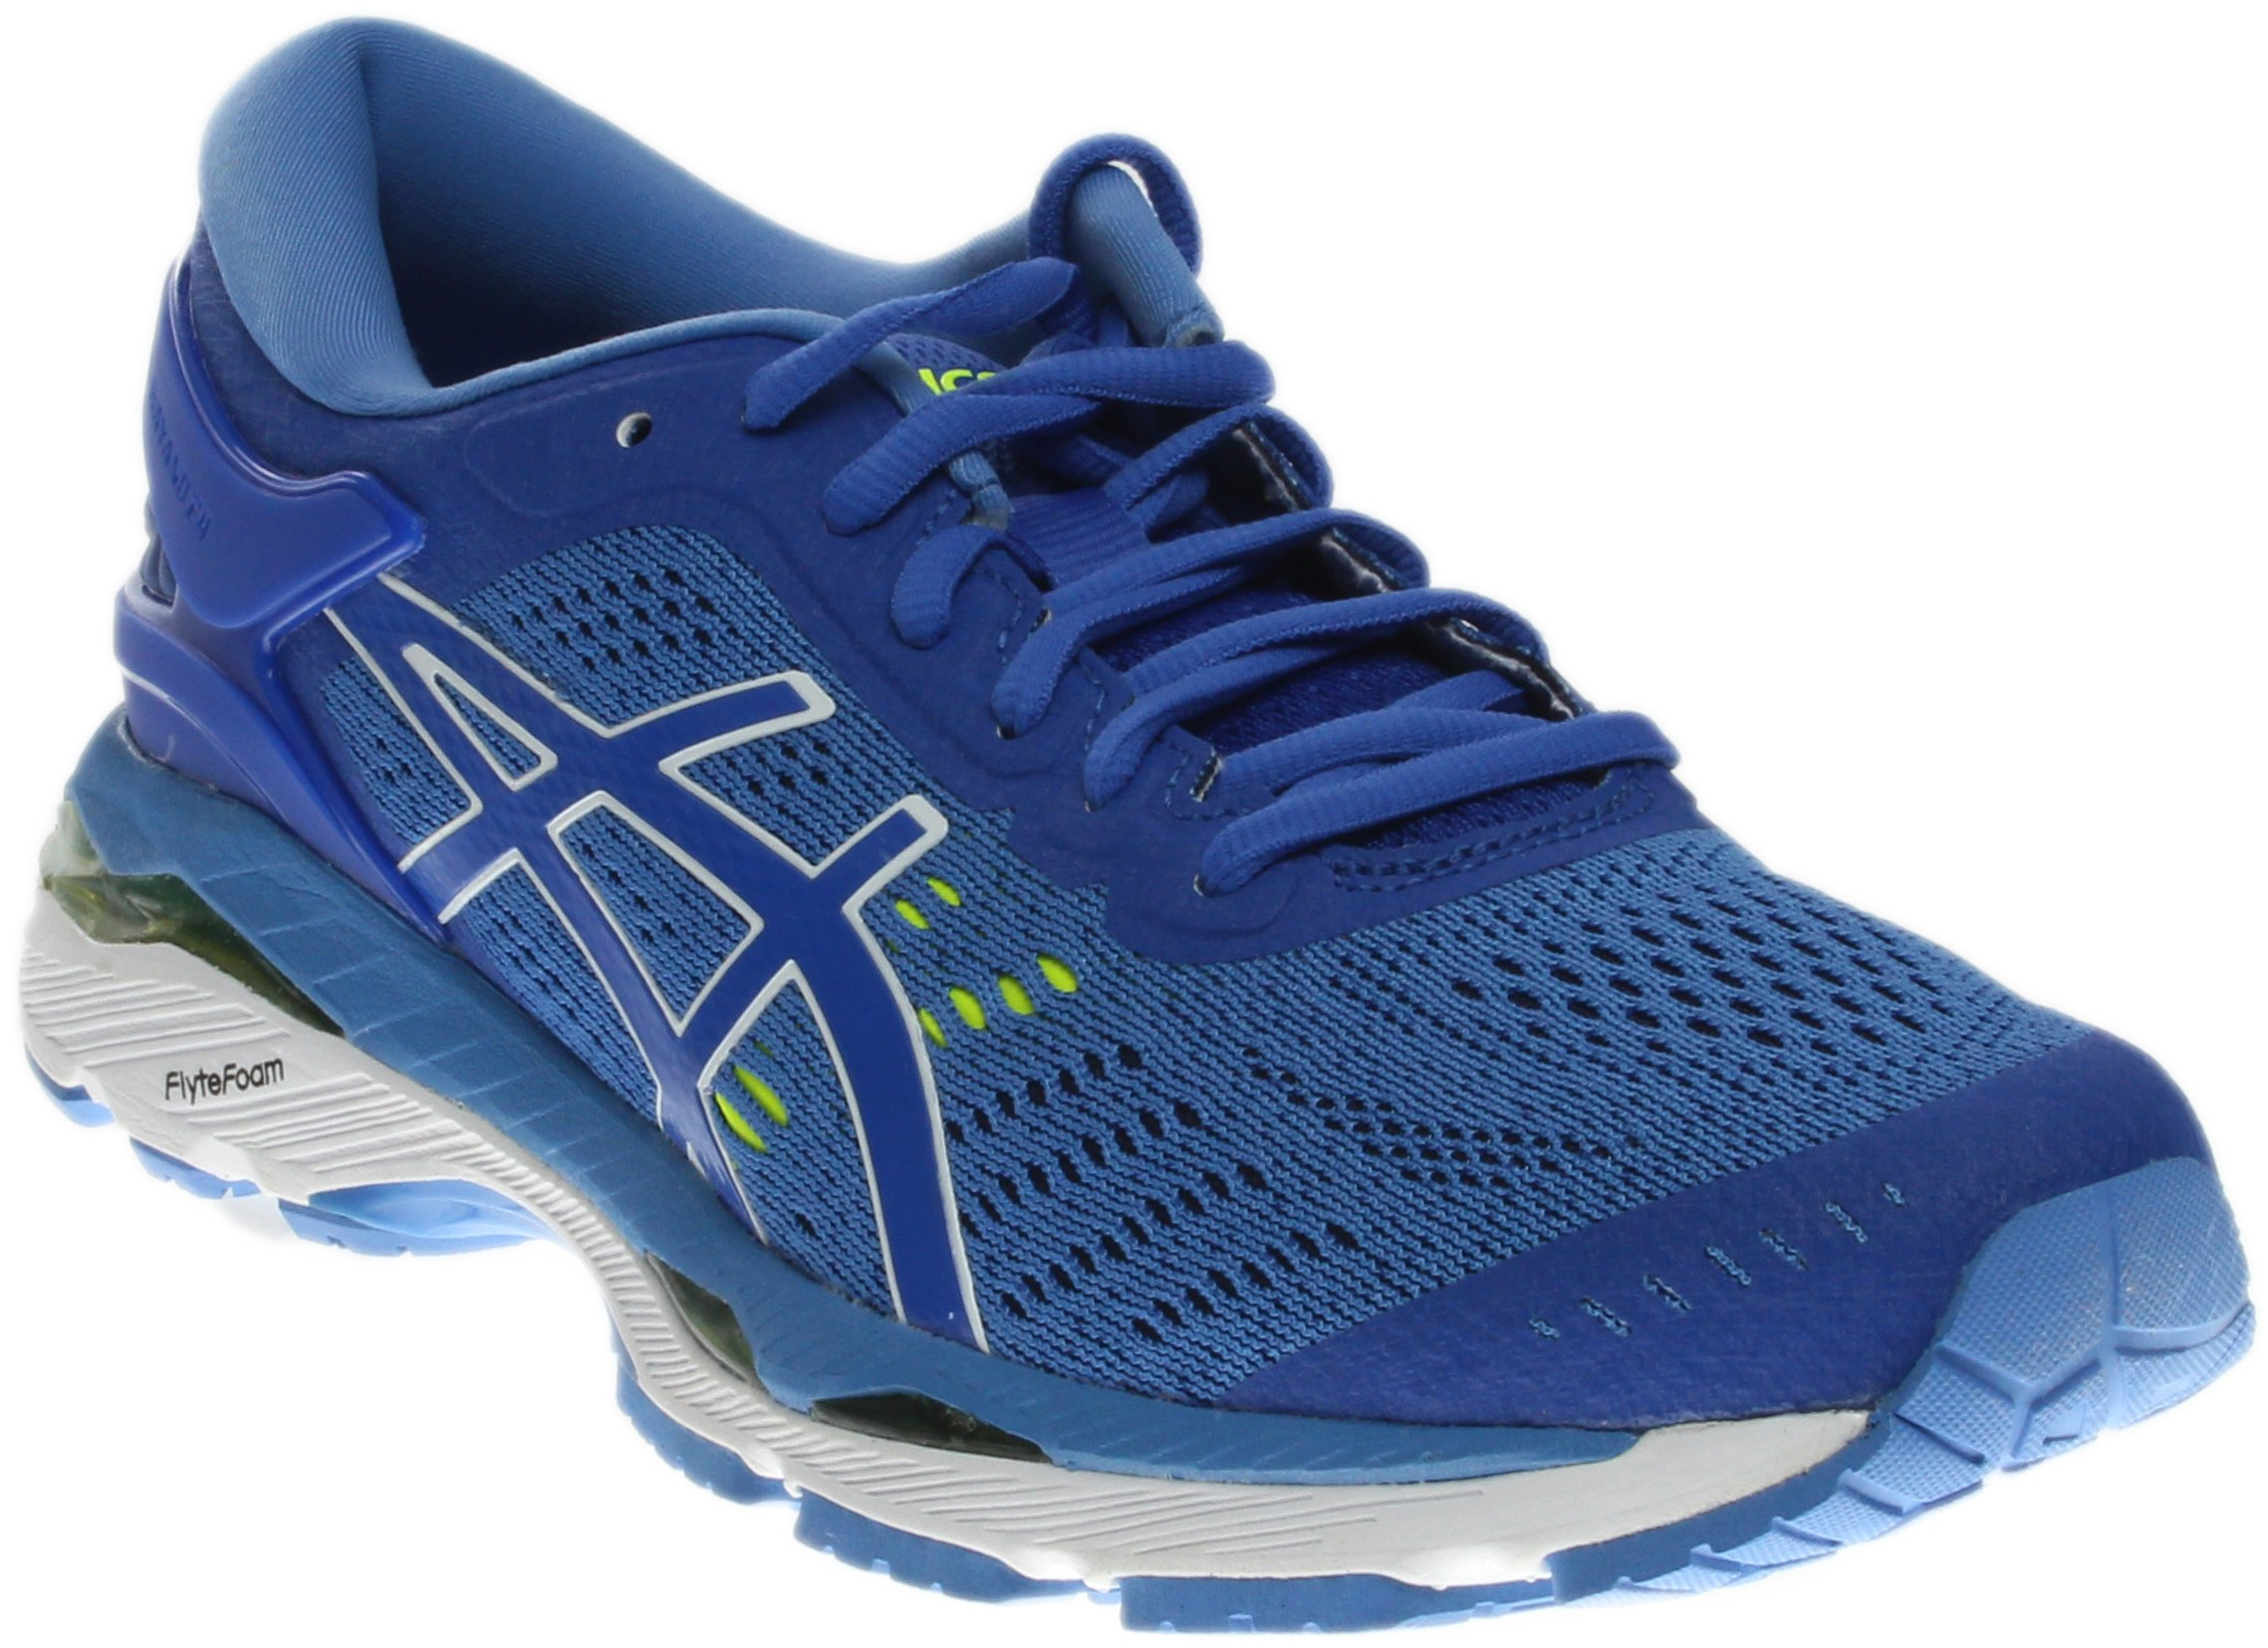 ASICS Womens Gel-Kayano 24 Running Shoe Purple/Regatta Blue/White, 7.5 D US